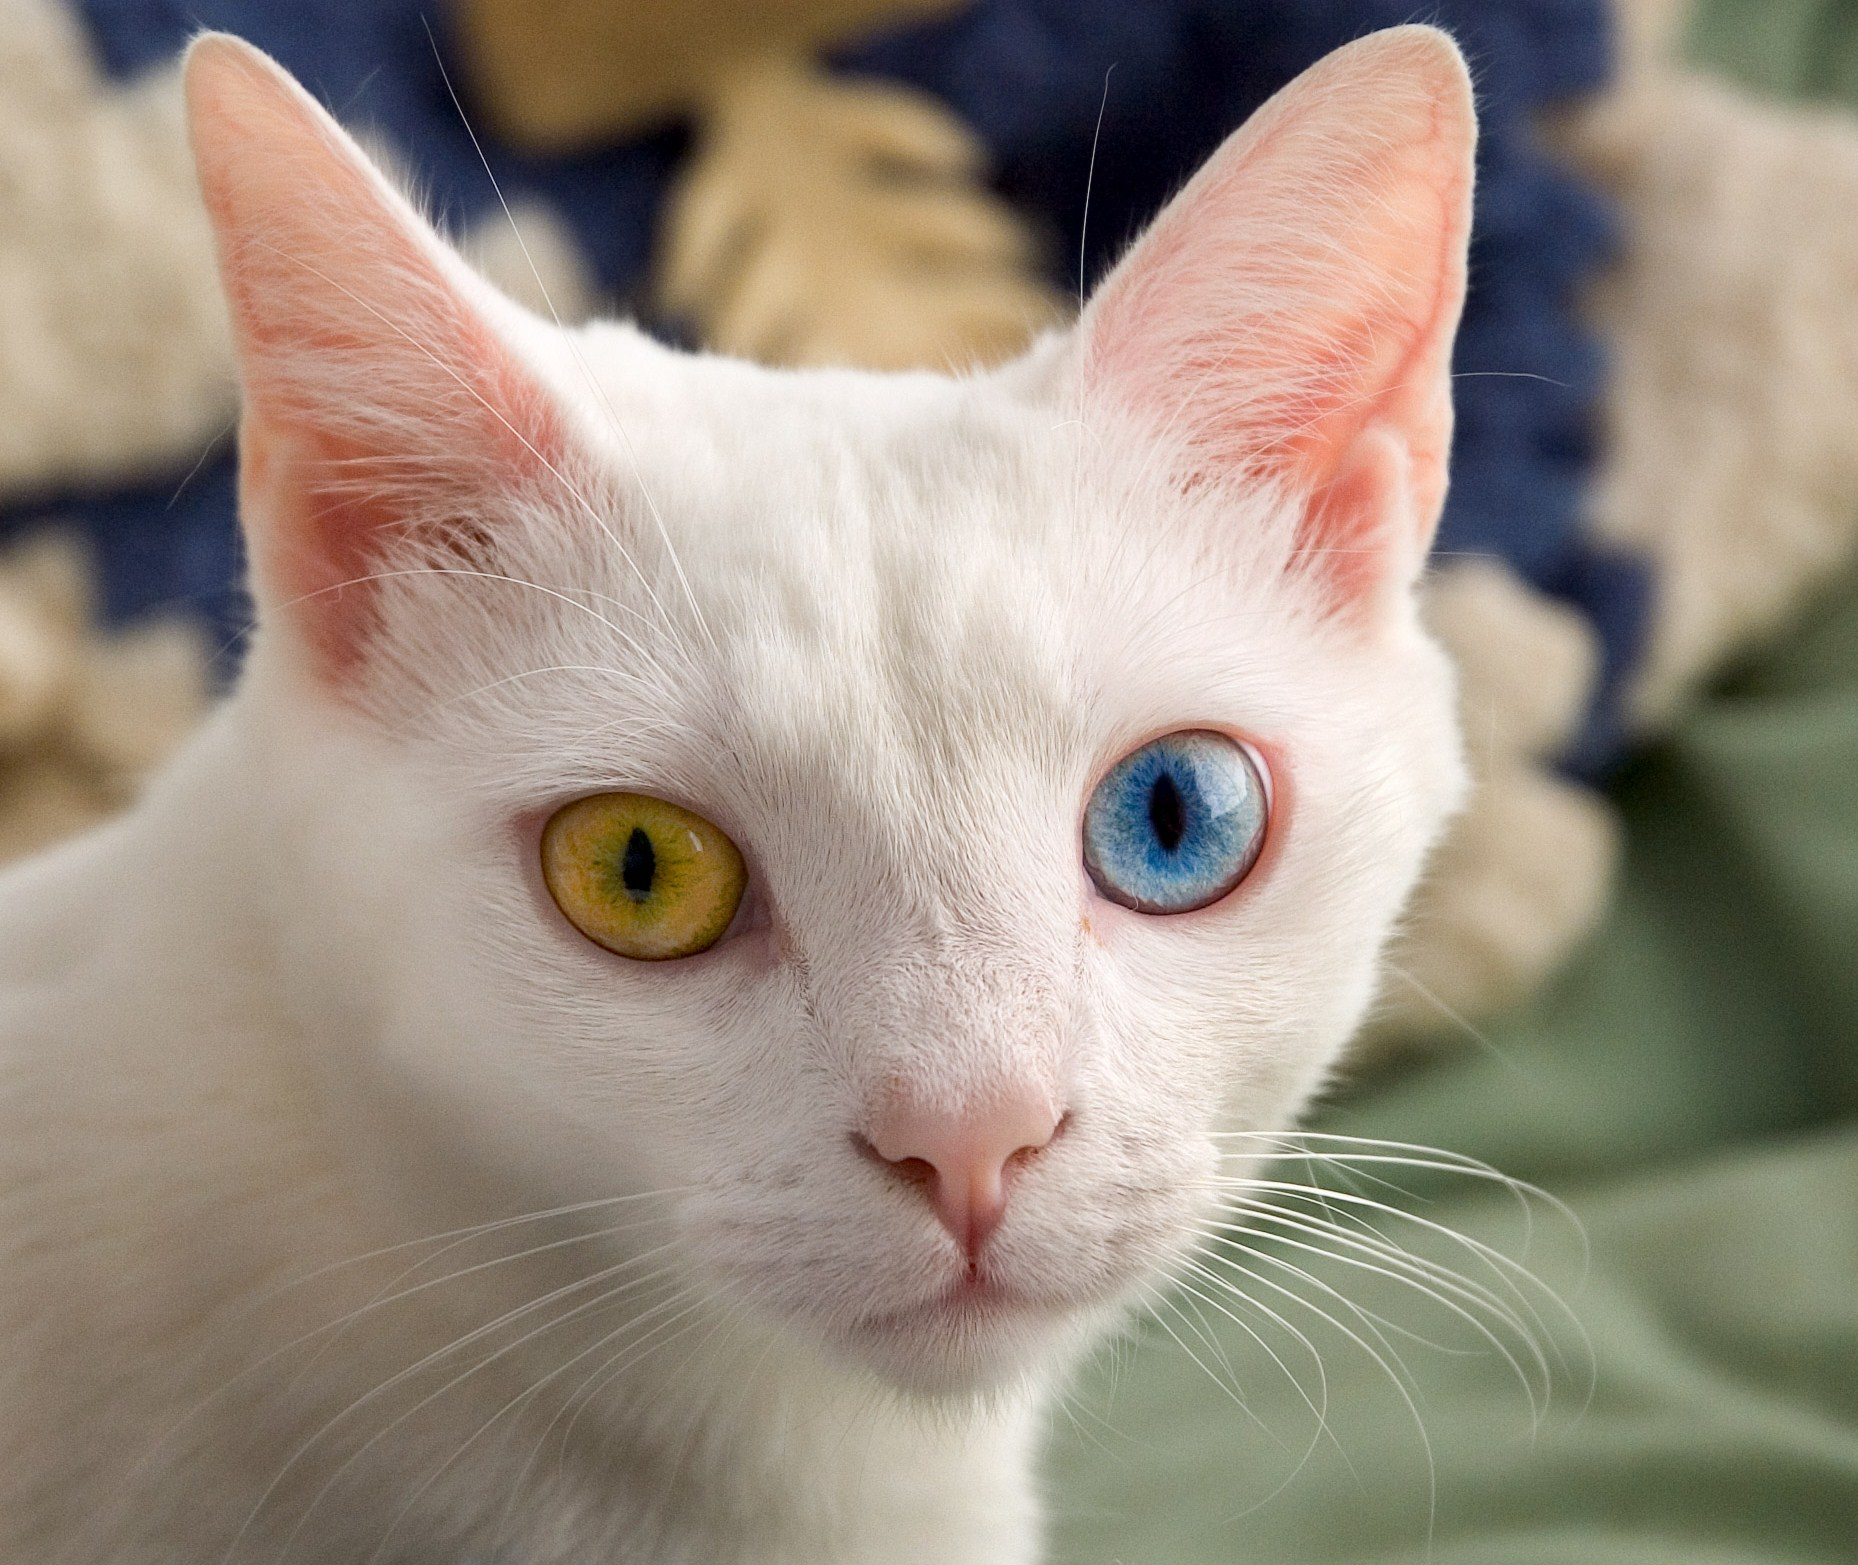 Odd-eyed cat - Wikipedia